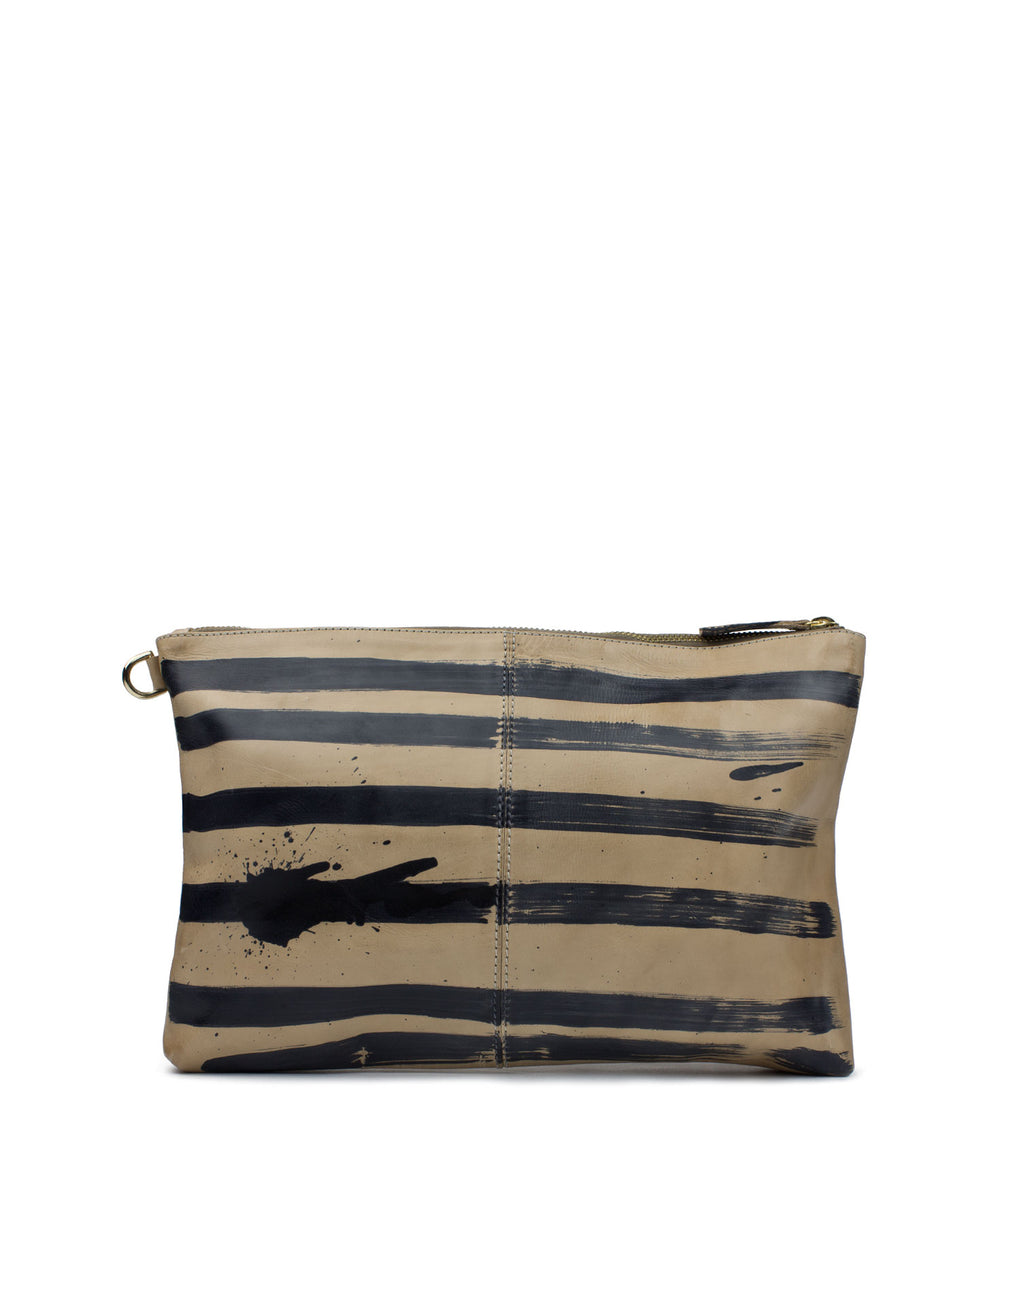 Hand Painted Leather Pouch bag by designer Georgina Goodman